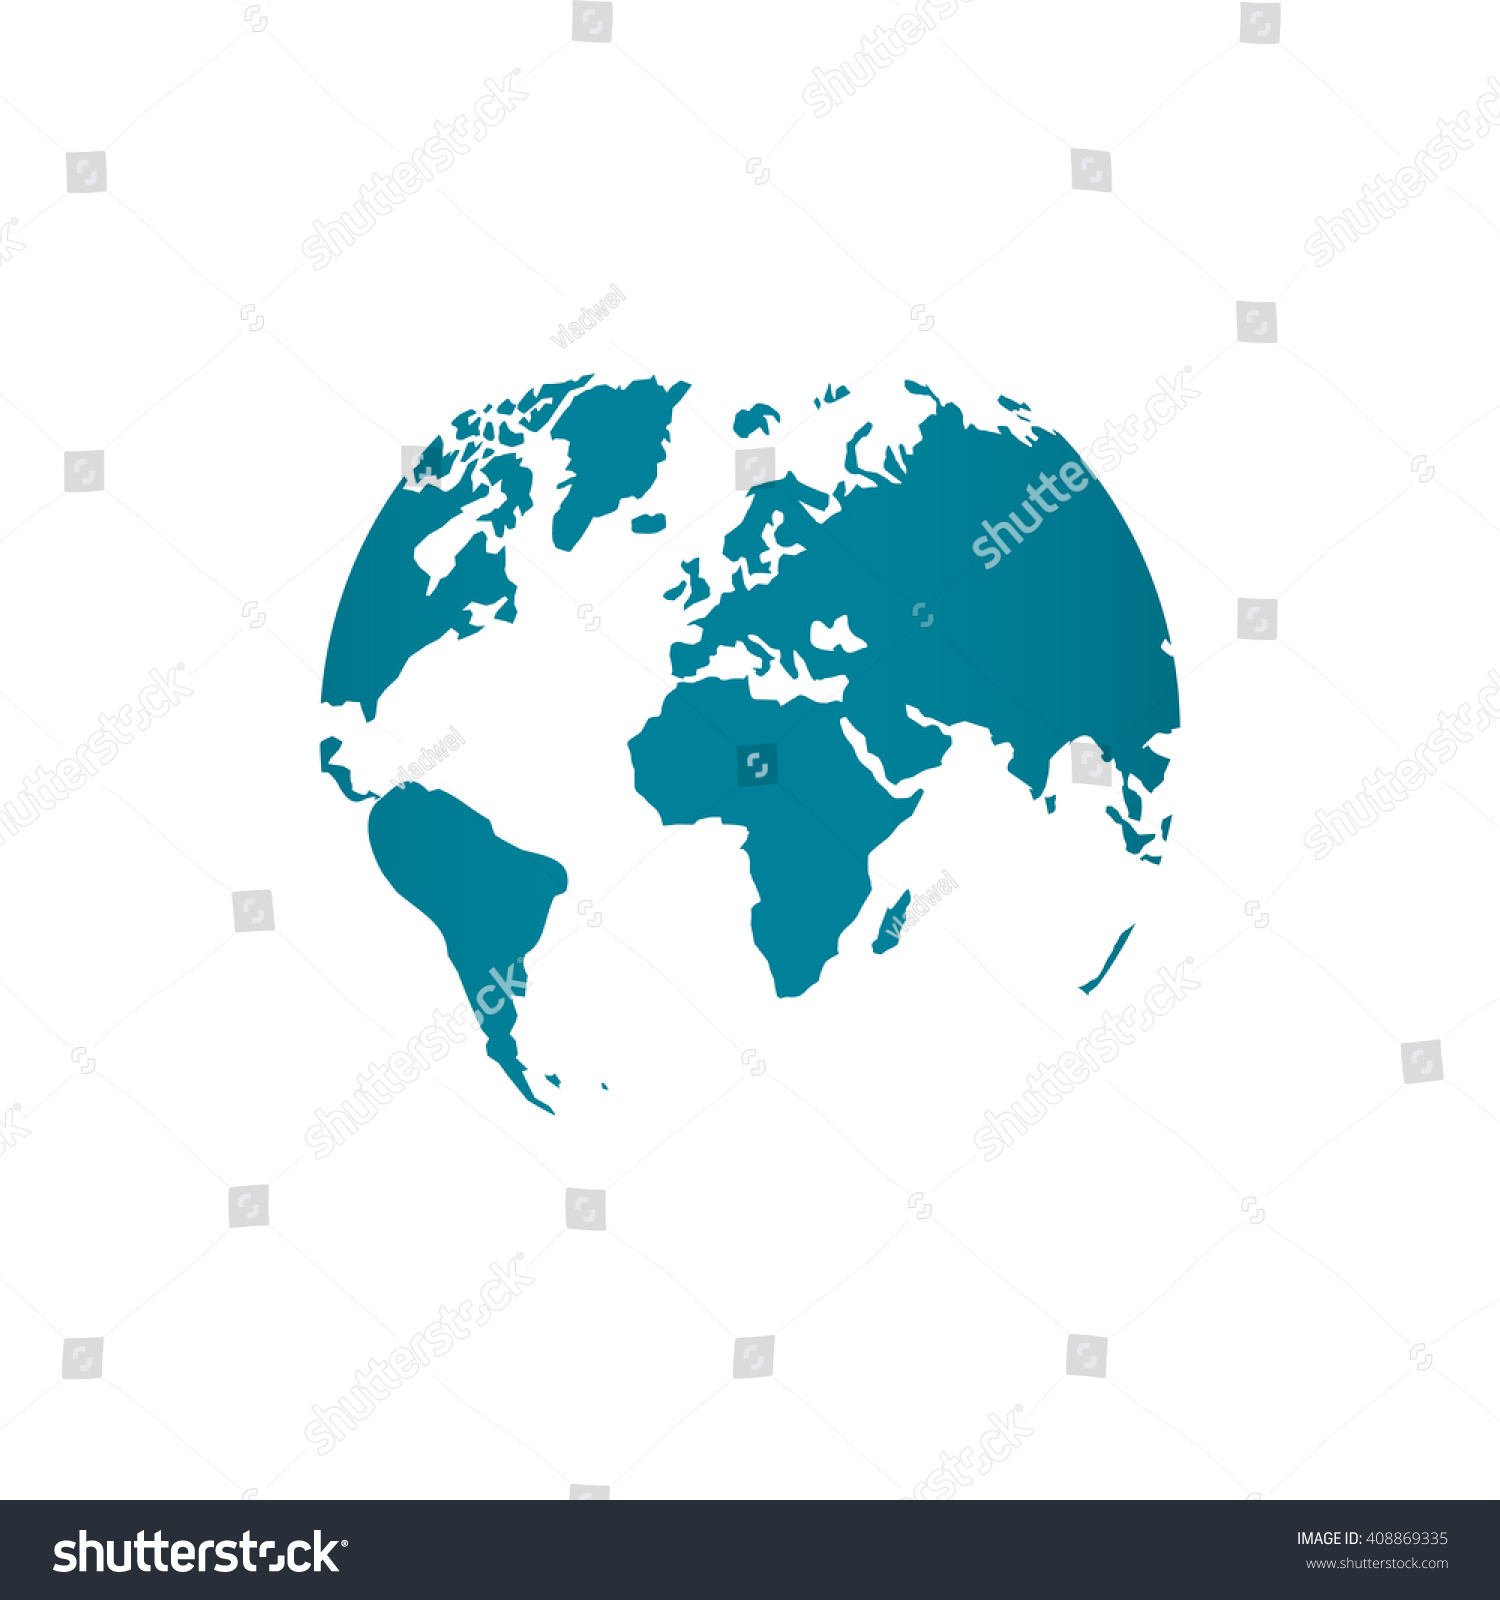 Blue world map globe vector illustration vectores en stock 408869335 blue world map globe vector illustration isolated on white background stylized in sphere shape gumiabroncs